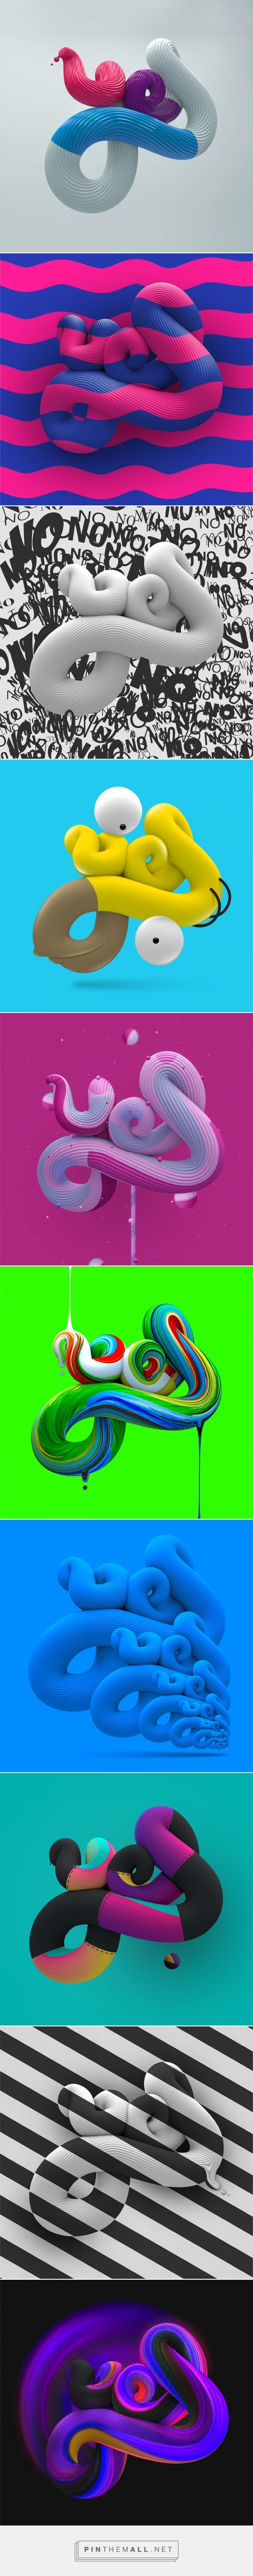 About Yes on Behance - created via https://pinthemall.net